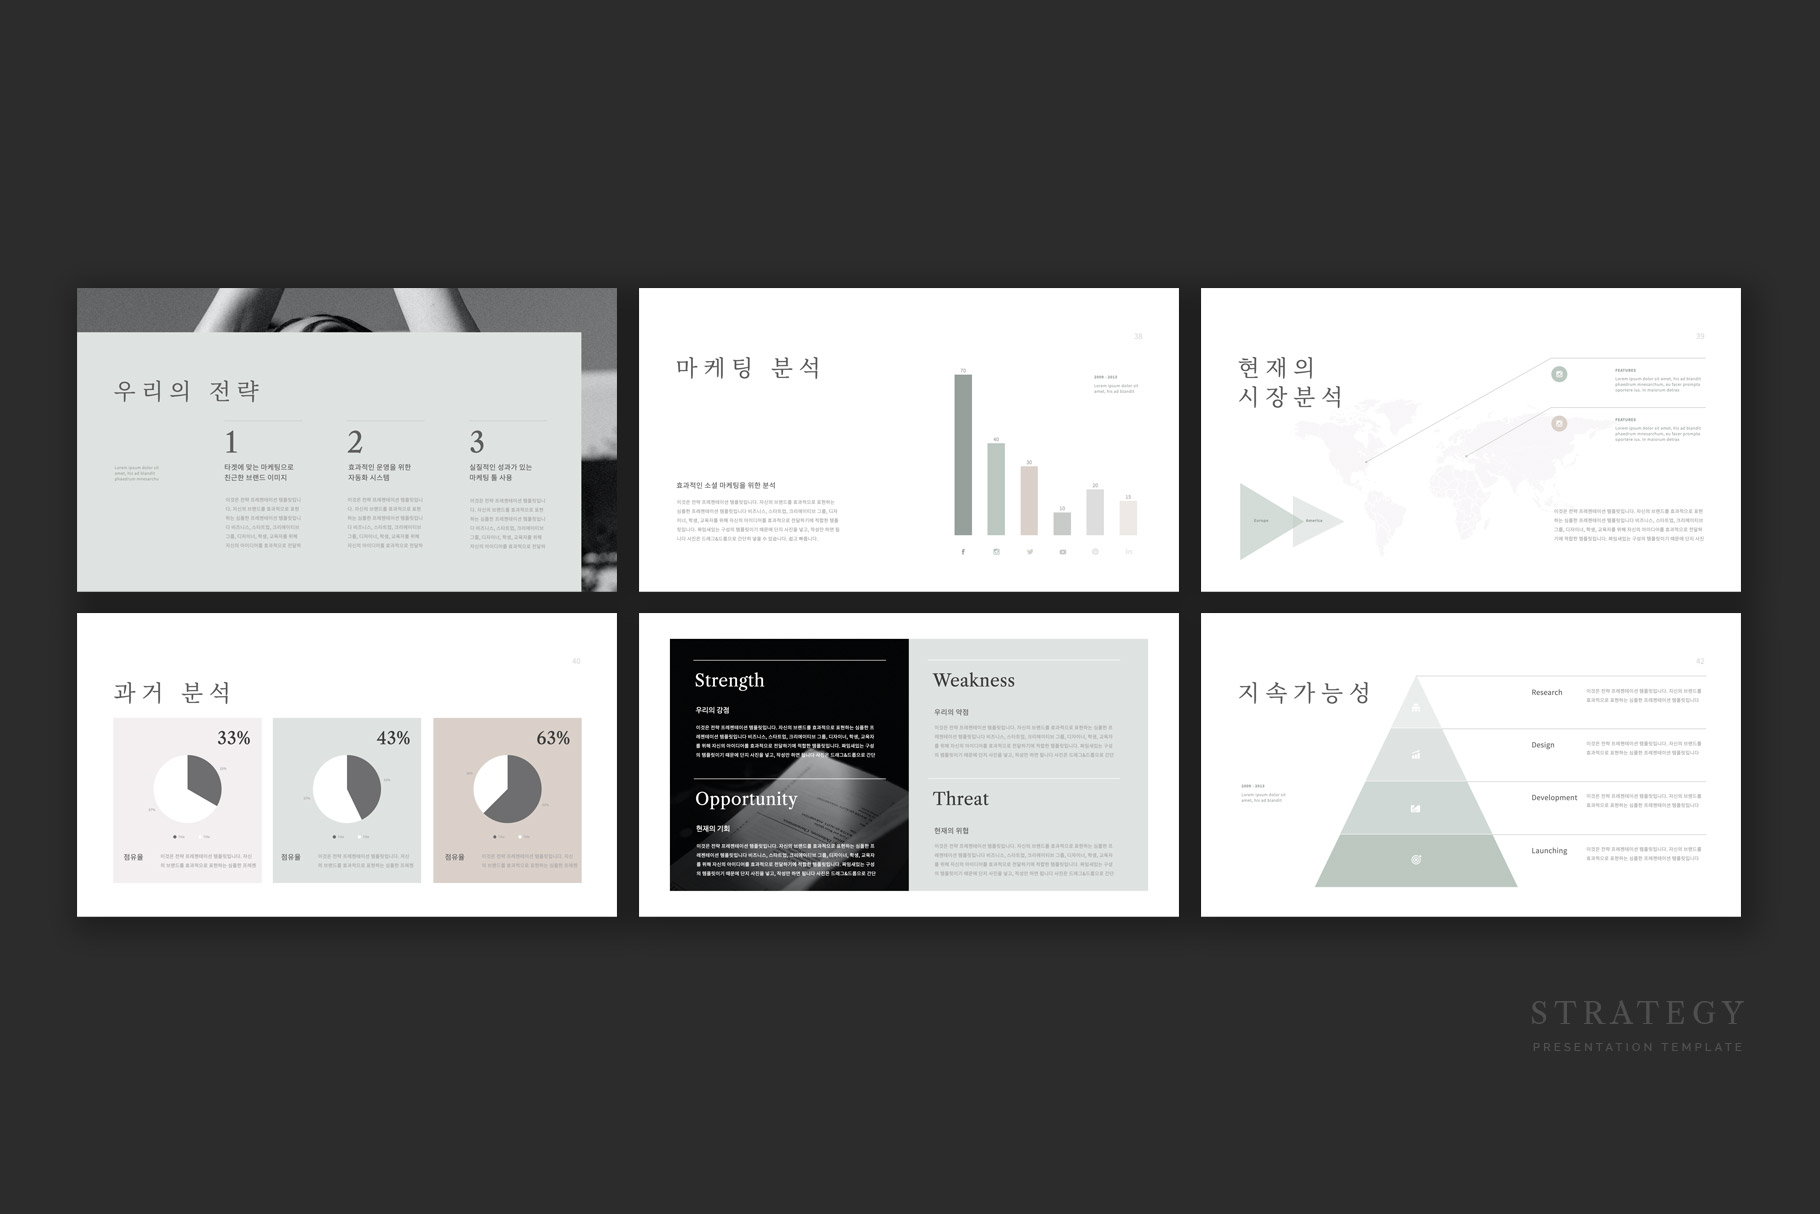 Strategy Presentation Template